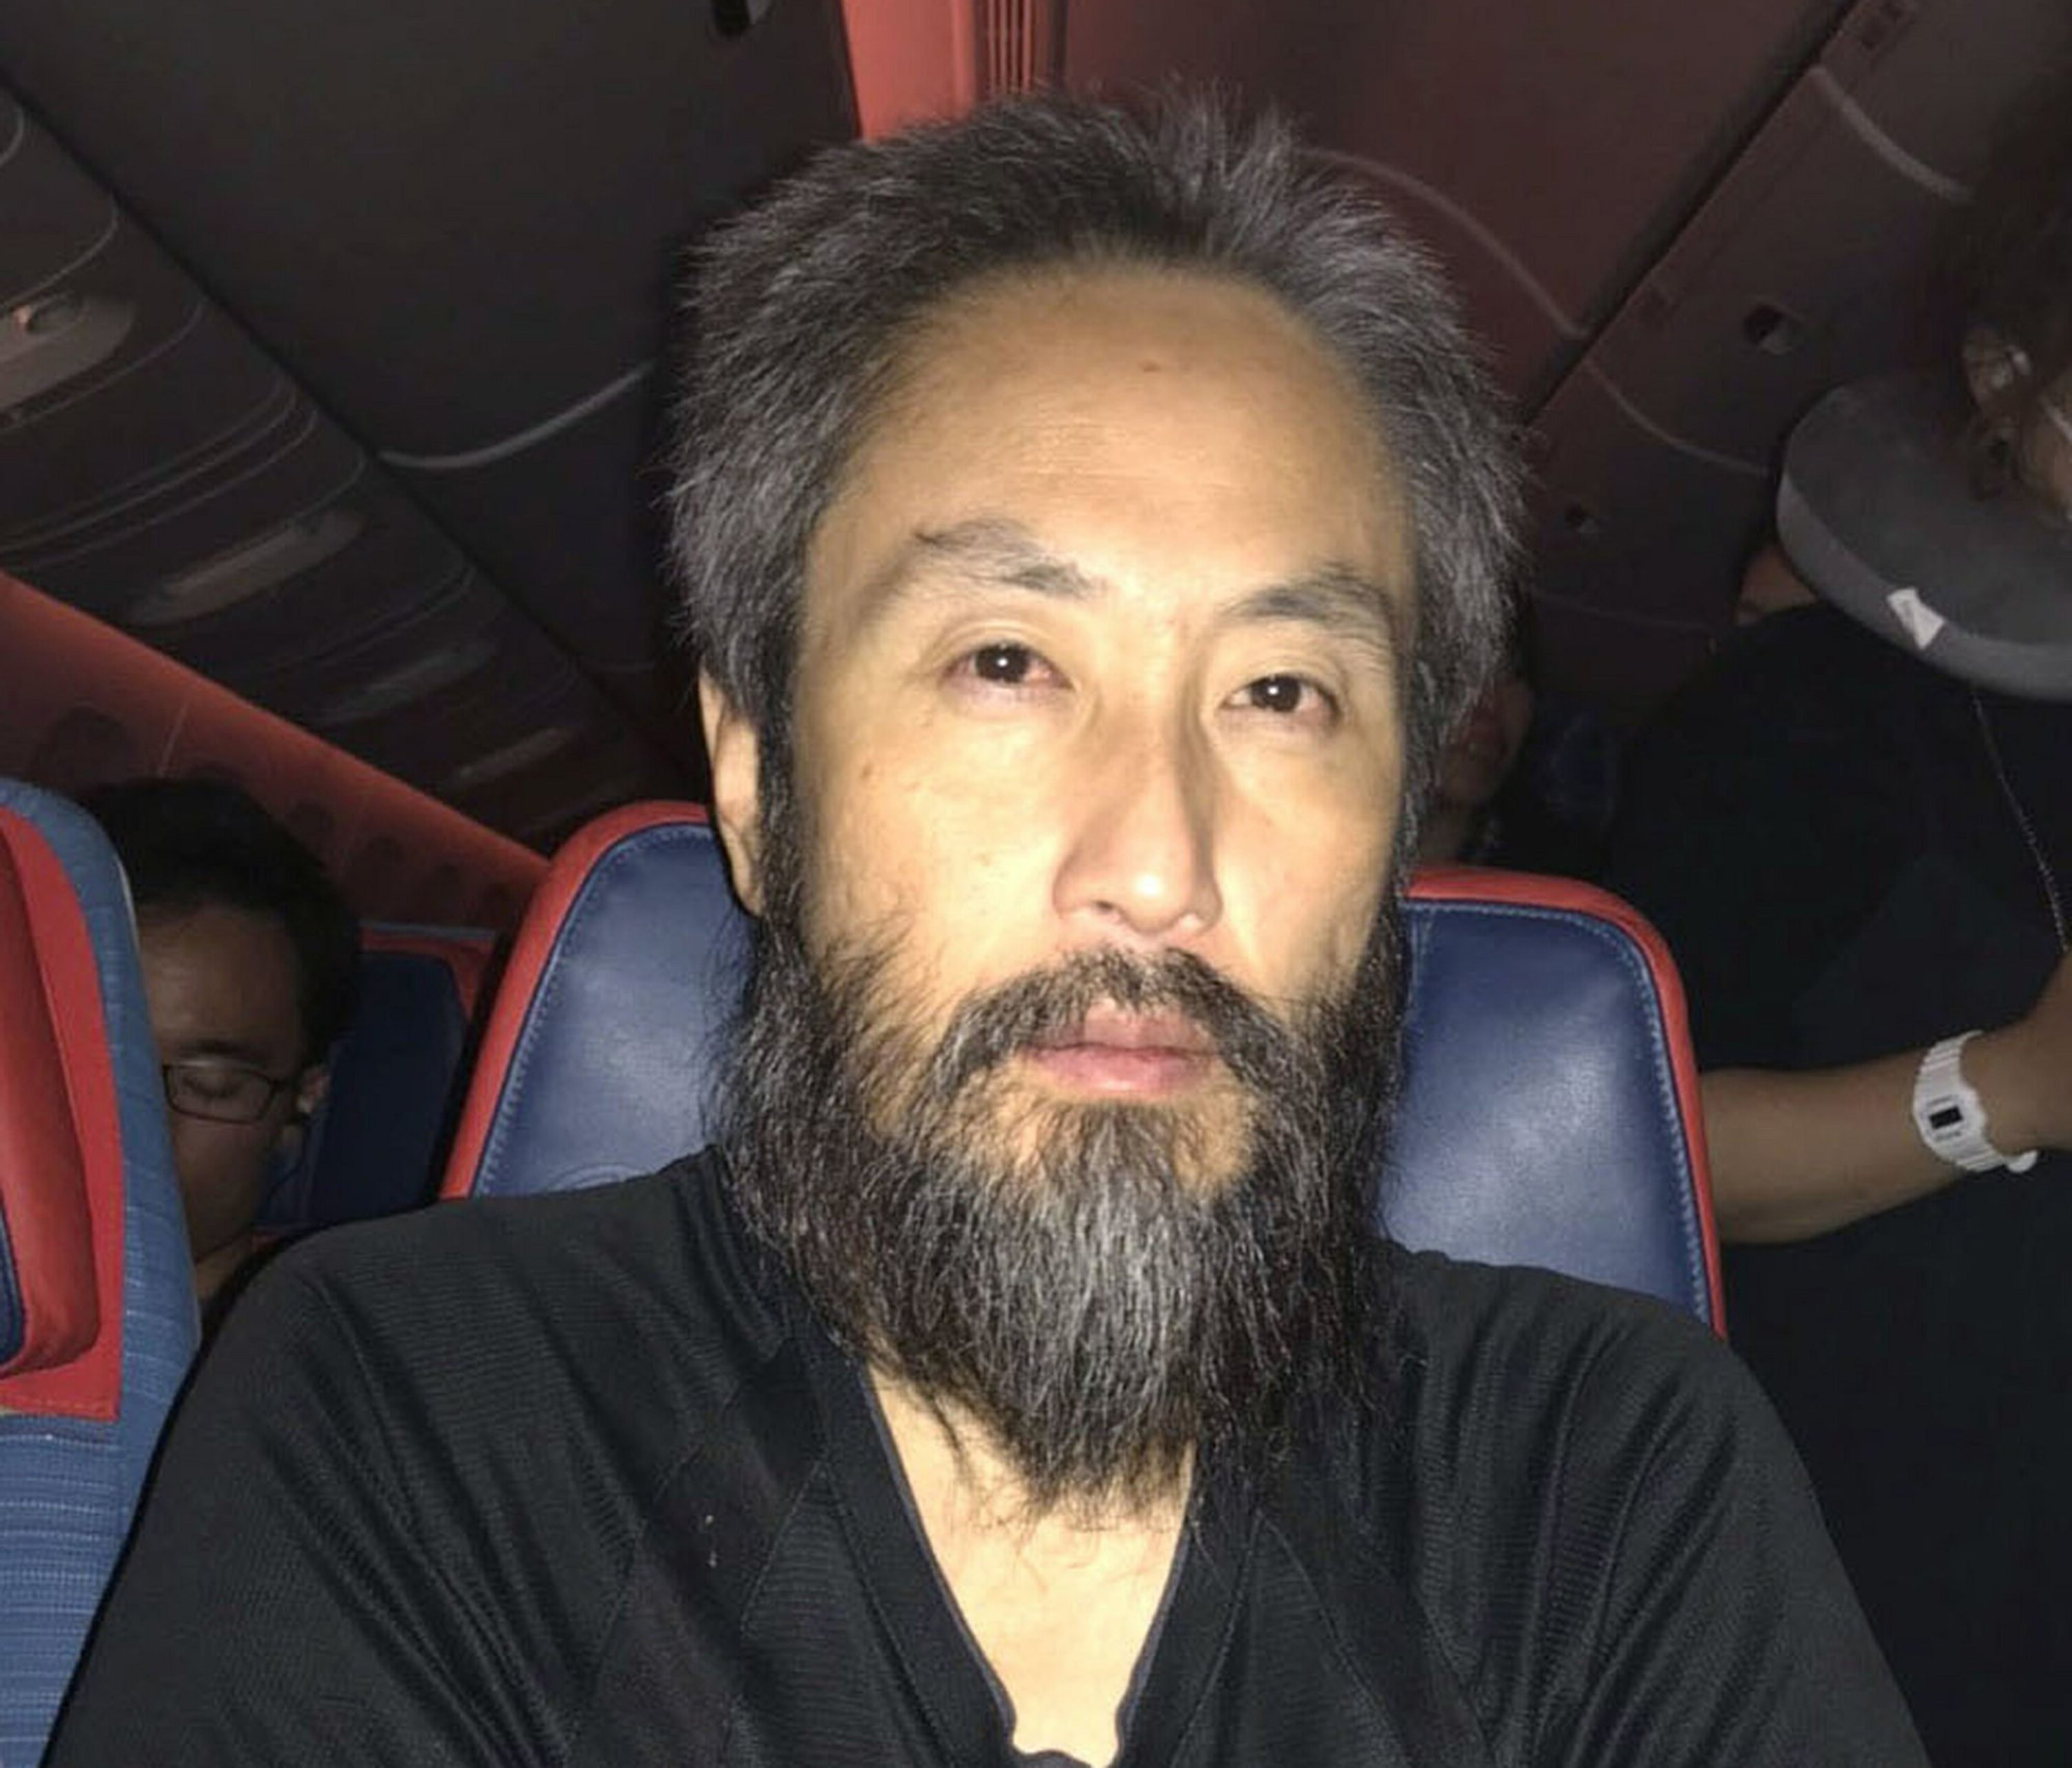 A full beard of Japanese men.